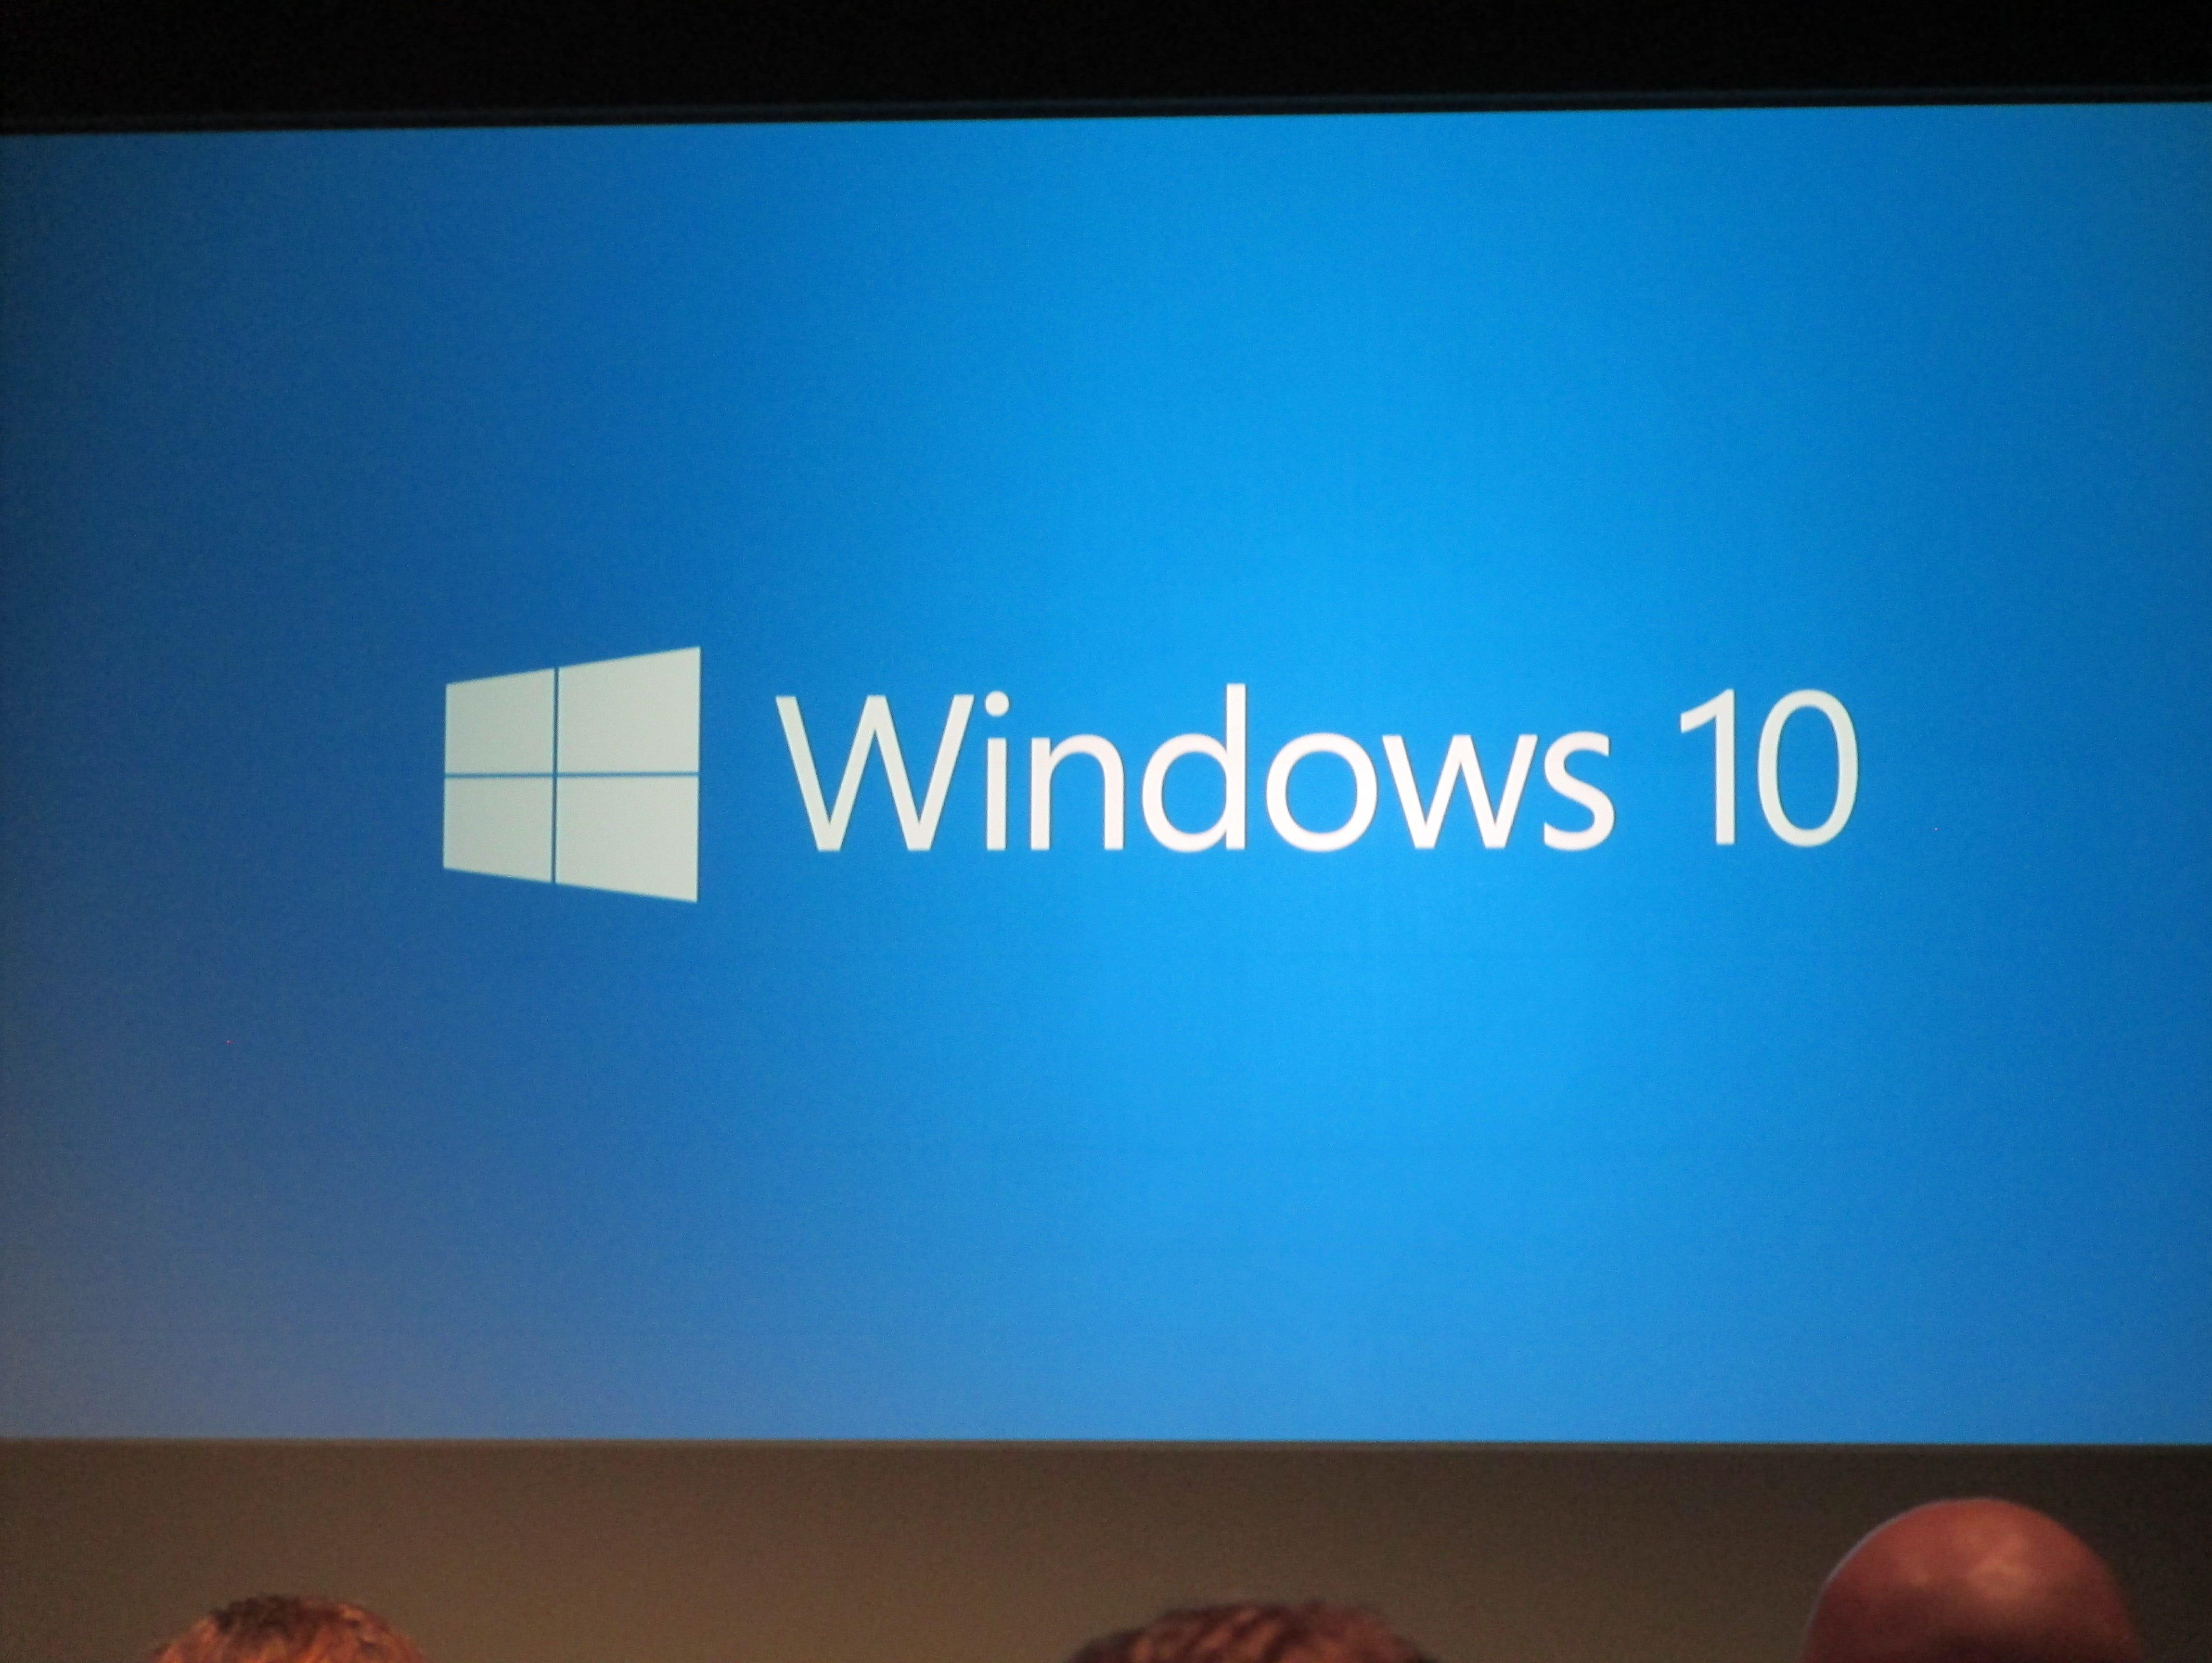 Should you update to Windows 10?